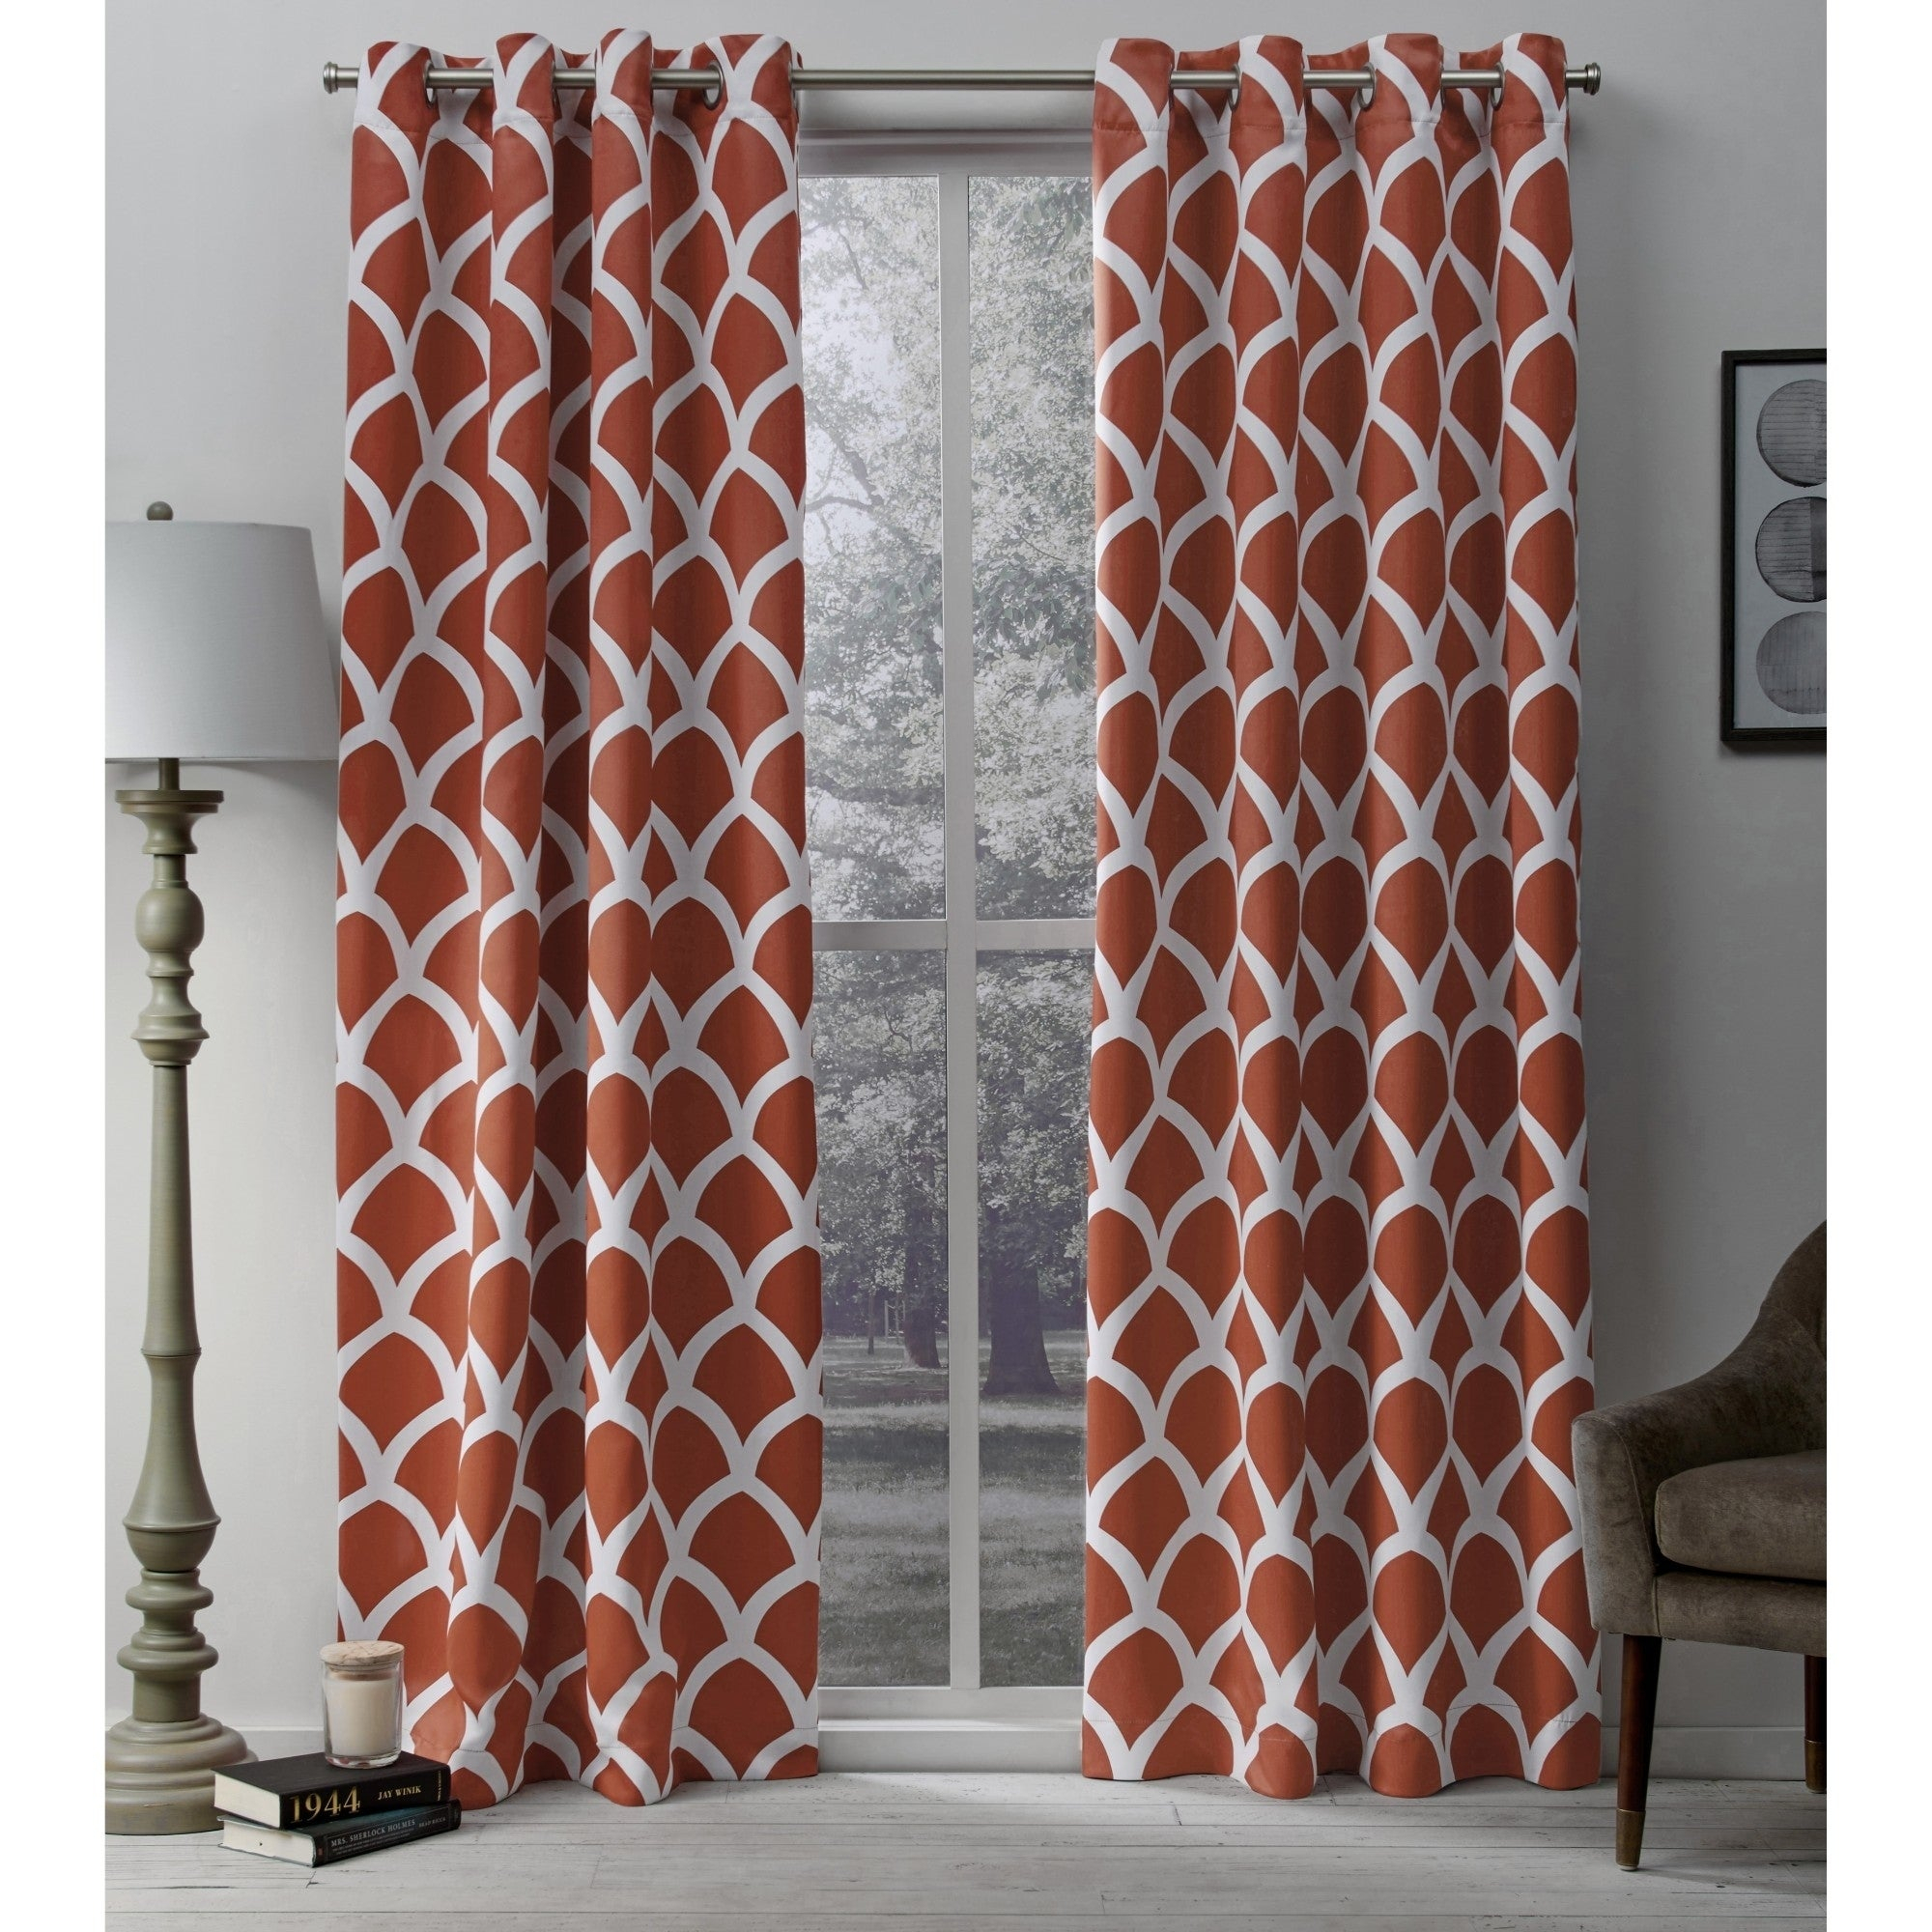 The Curated Nomad Ames Sateen Woven Blackout Grommet Top Curtain Panel Pair With Regard To Sateen Woven Blackout Curtain Panel Pairs With Pinch Pleat Top (View 20 of 20)